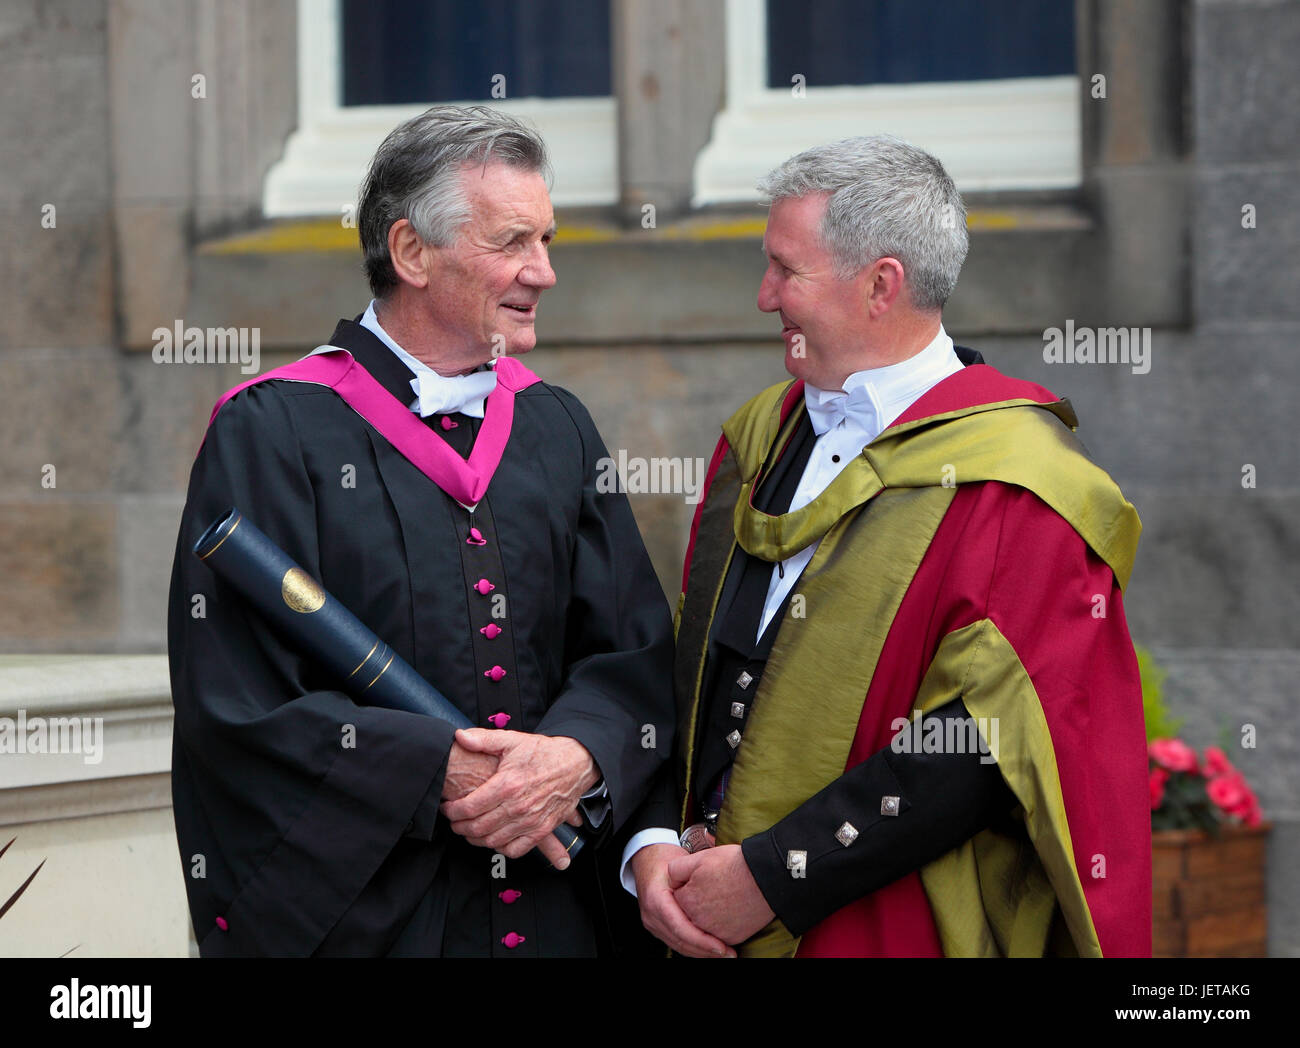 Michael Palin recieves an honorary degree from St andrews University,Fife,Scotland,UK,Friday 23rd of June 2017 - Stock Image